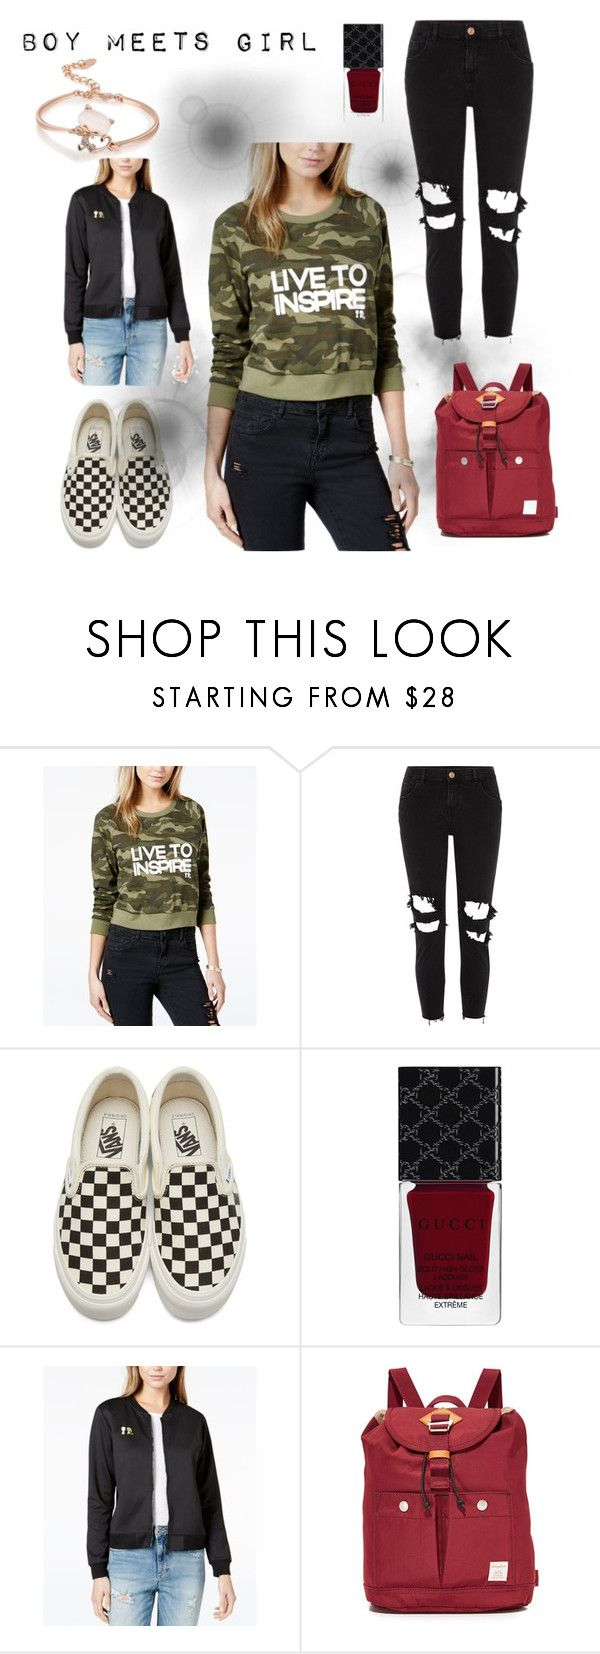 """Boy Meets Girl #1: Hit the Streets"" by hannahsvenssonn ❤ liked on Polyvore featuring Boy Meets Girl, River Island, Vans, Gucci, Doughnut, boymeetsgirl and livetoinspire"